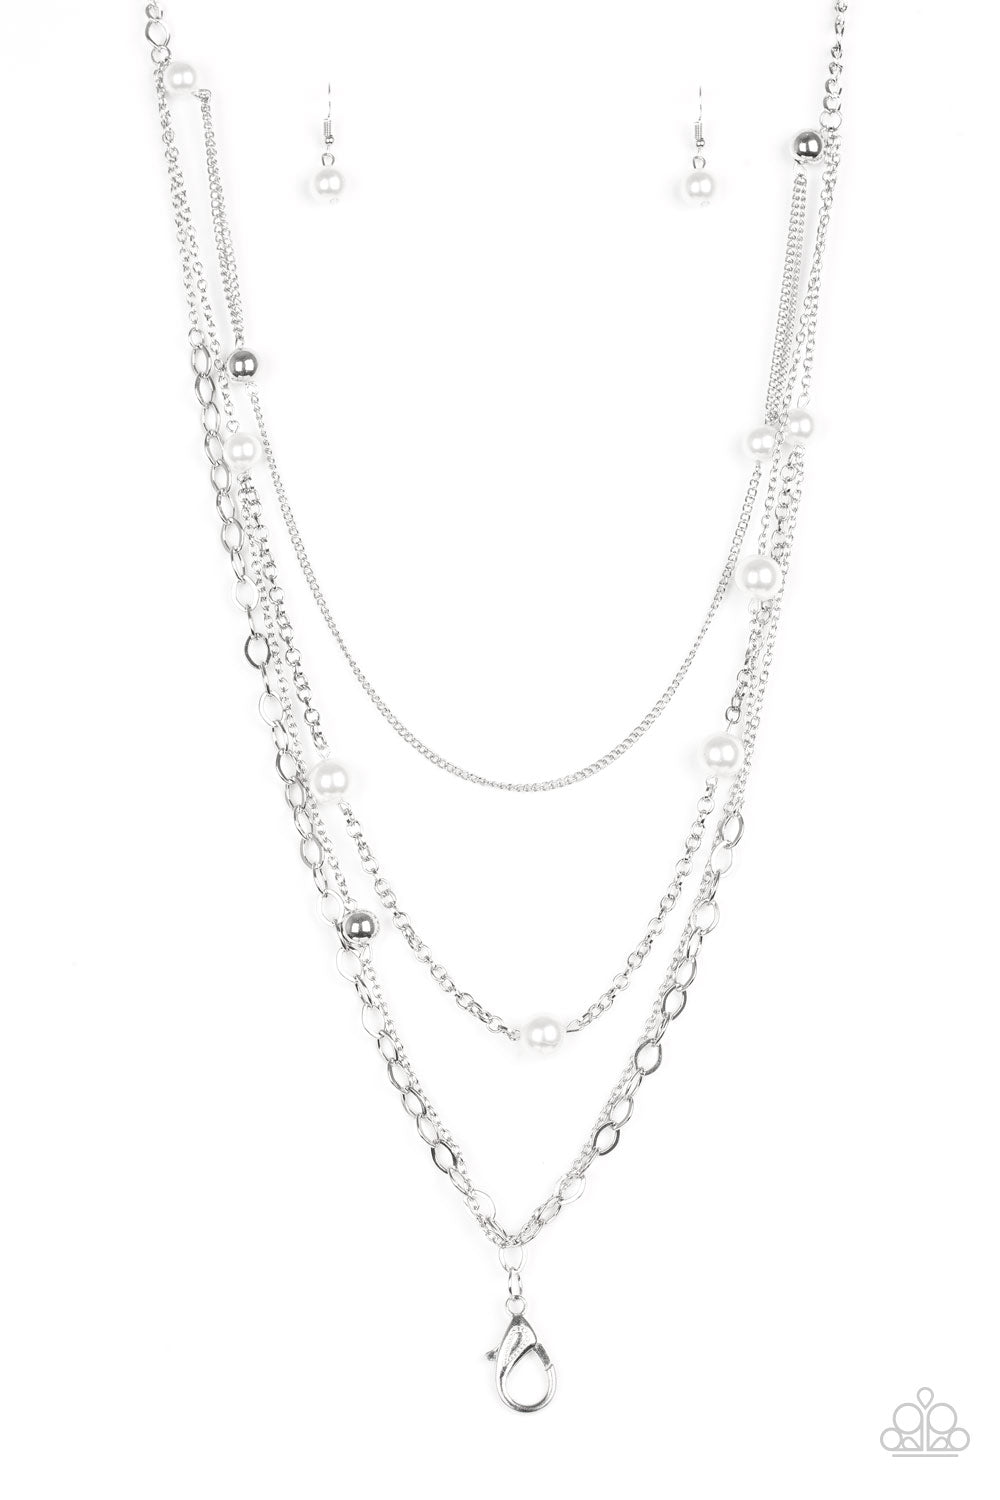 Glamour Grotto Lanyard White Necklace